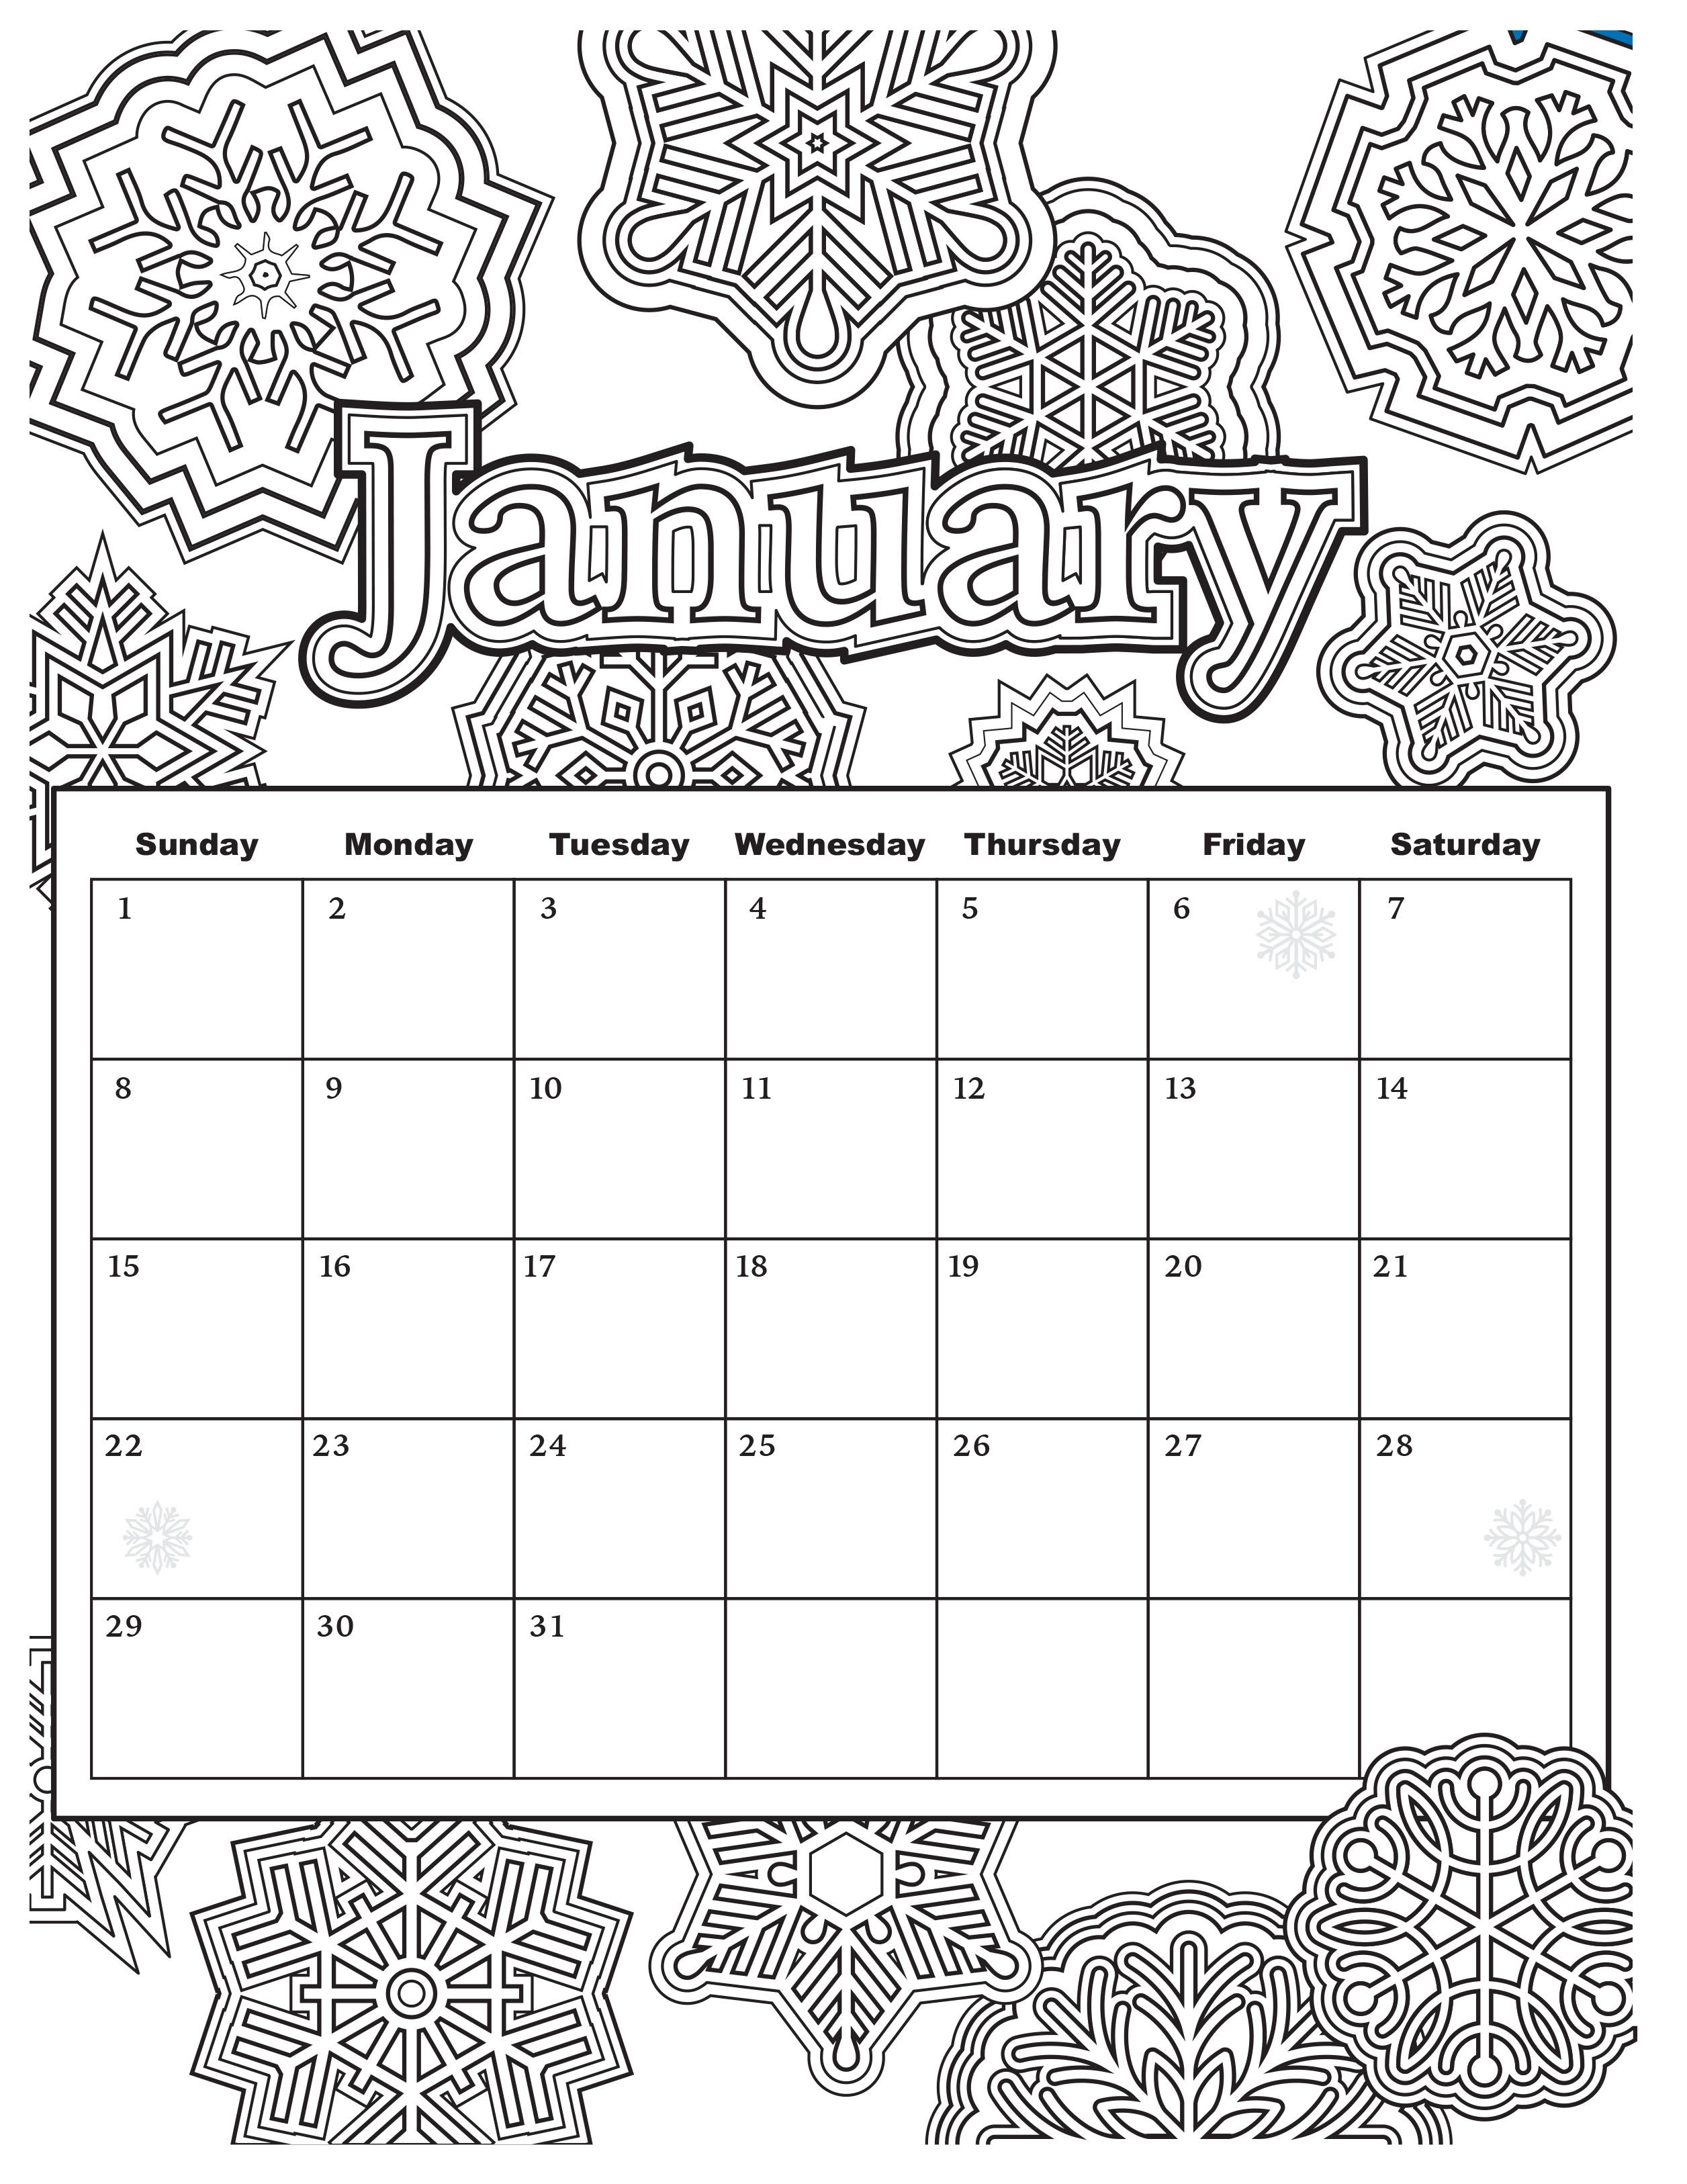 Free Printable Coloring Calendar 2019 With Download Pages From Popular Adult Books